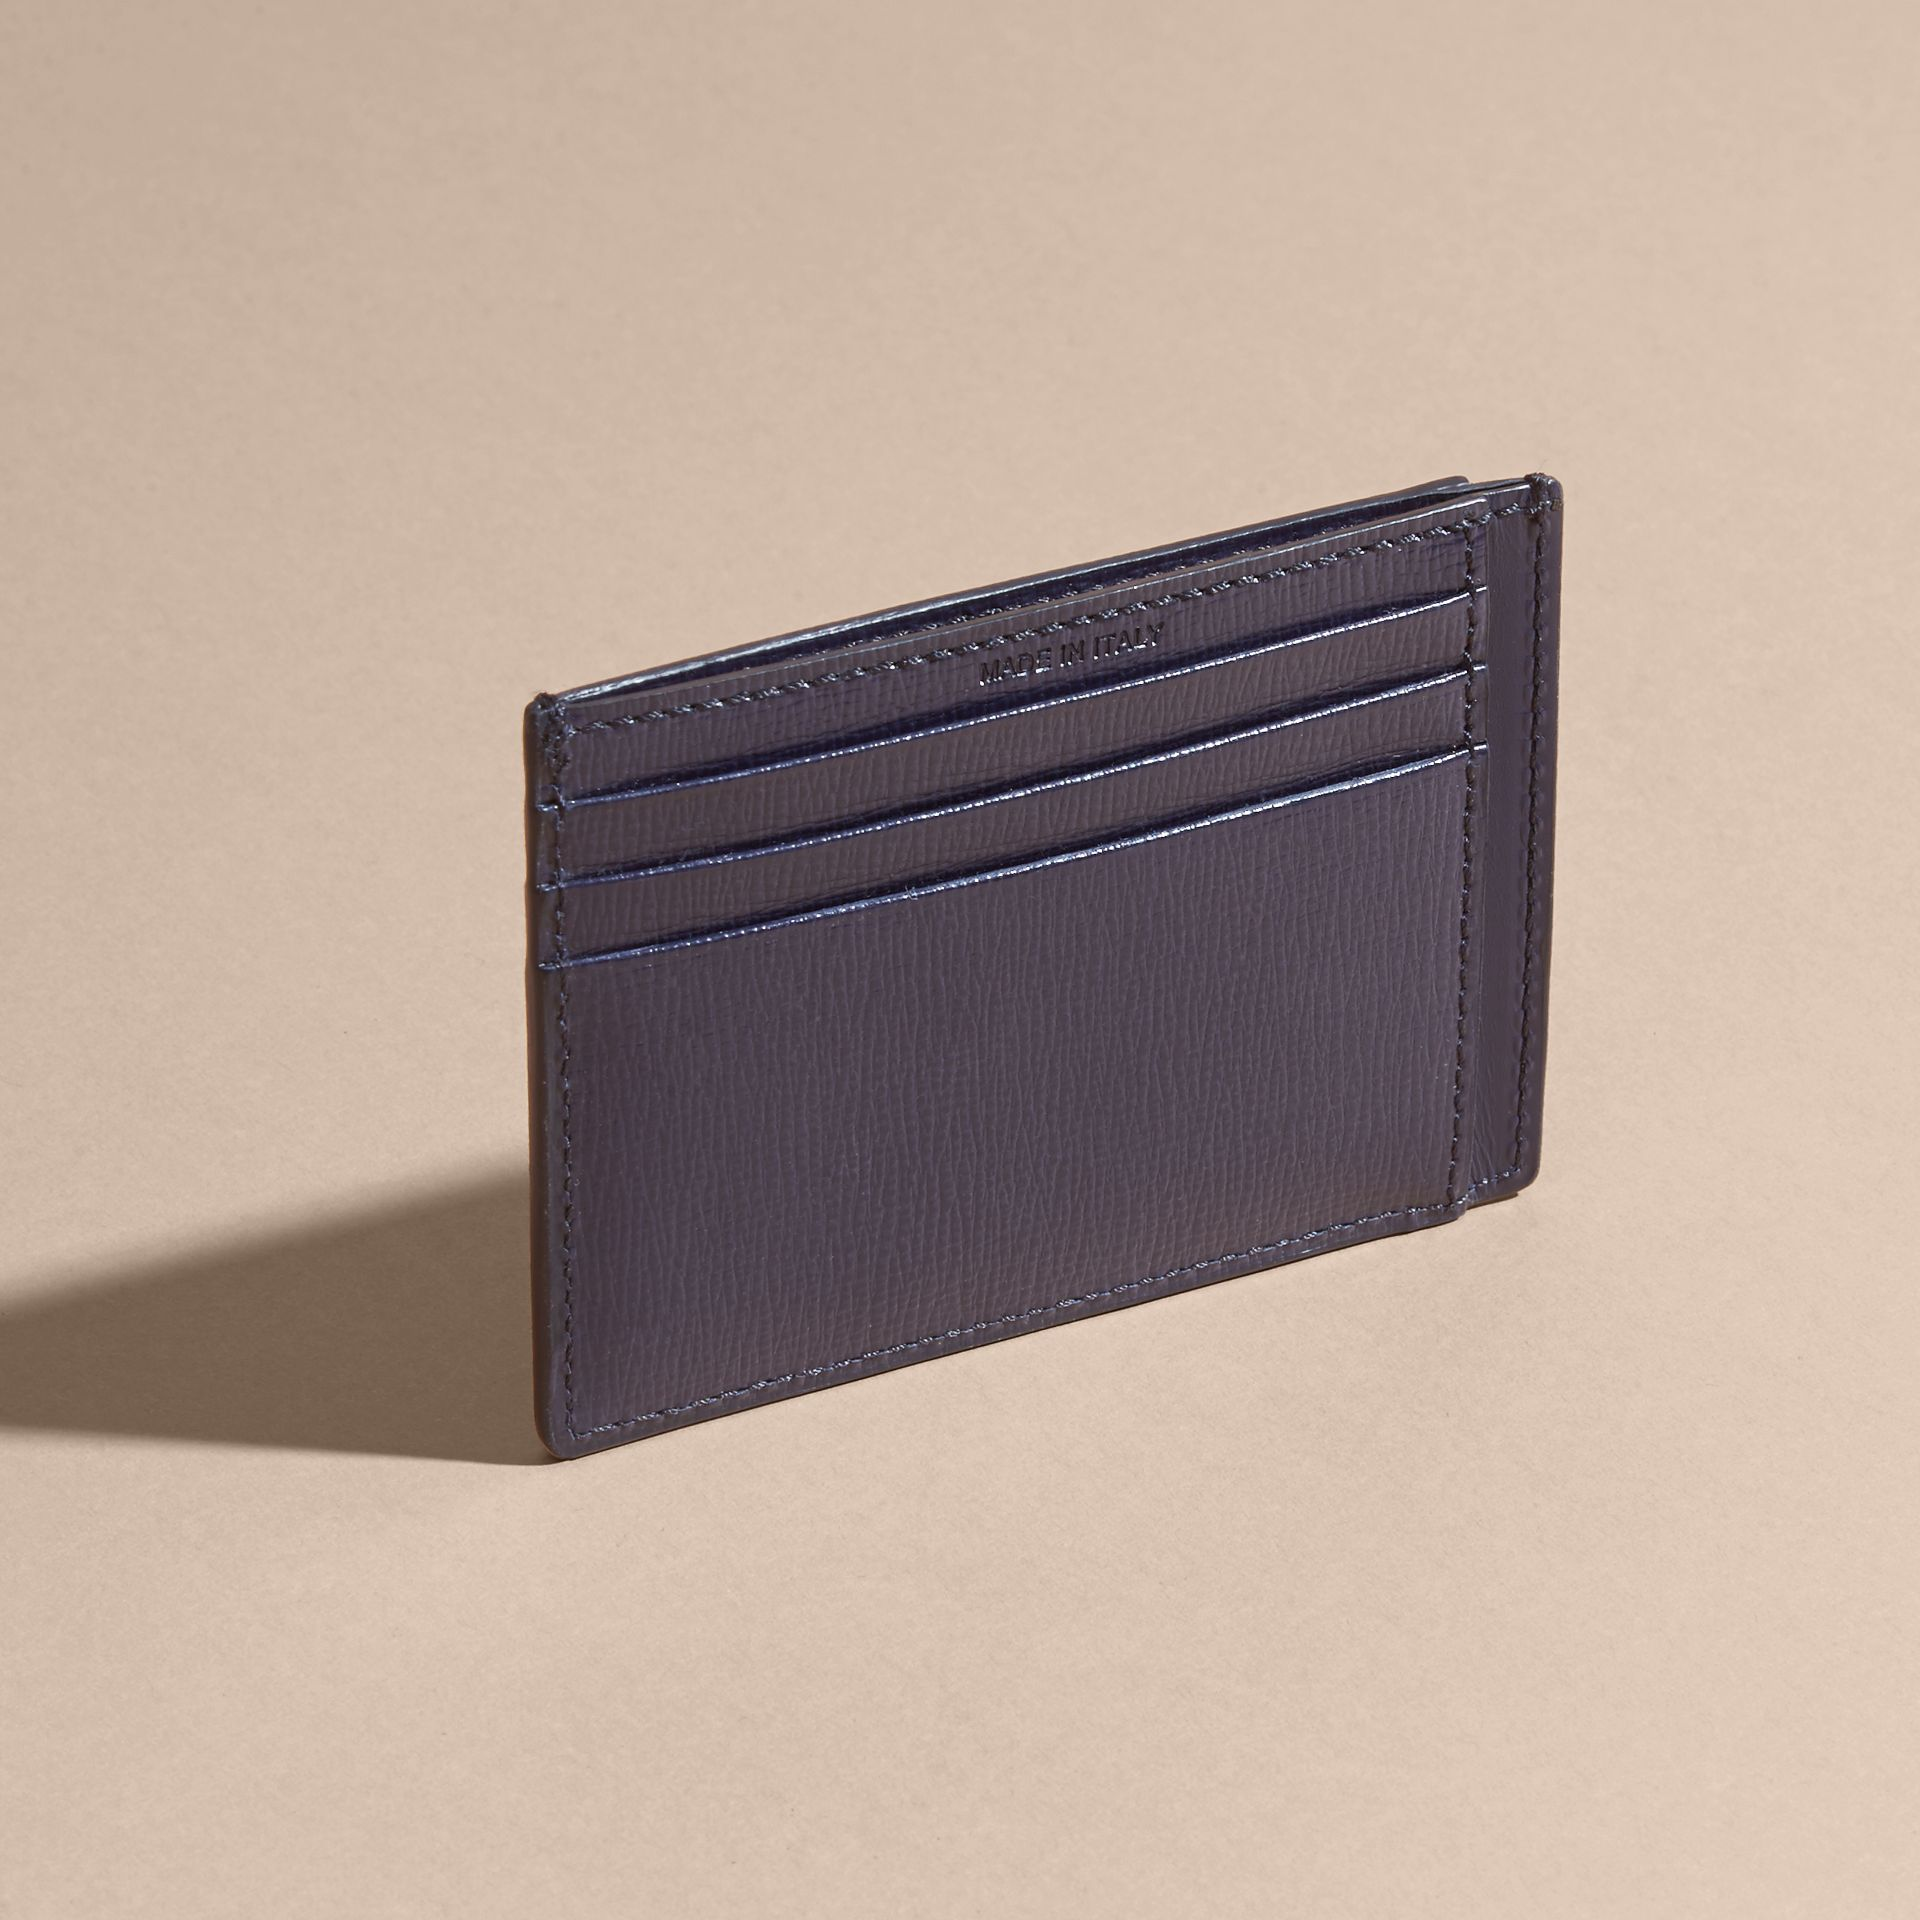 London Leather Card Case in Dark Navy | Burberry - gallery image 2